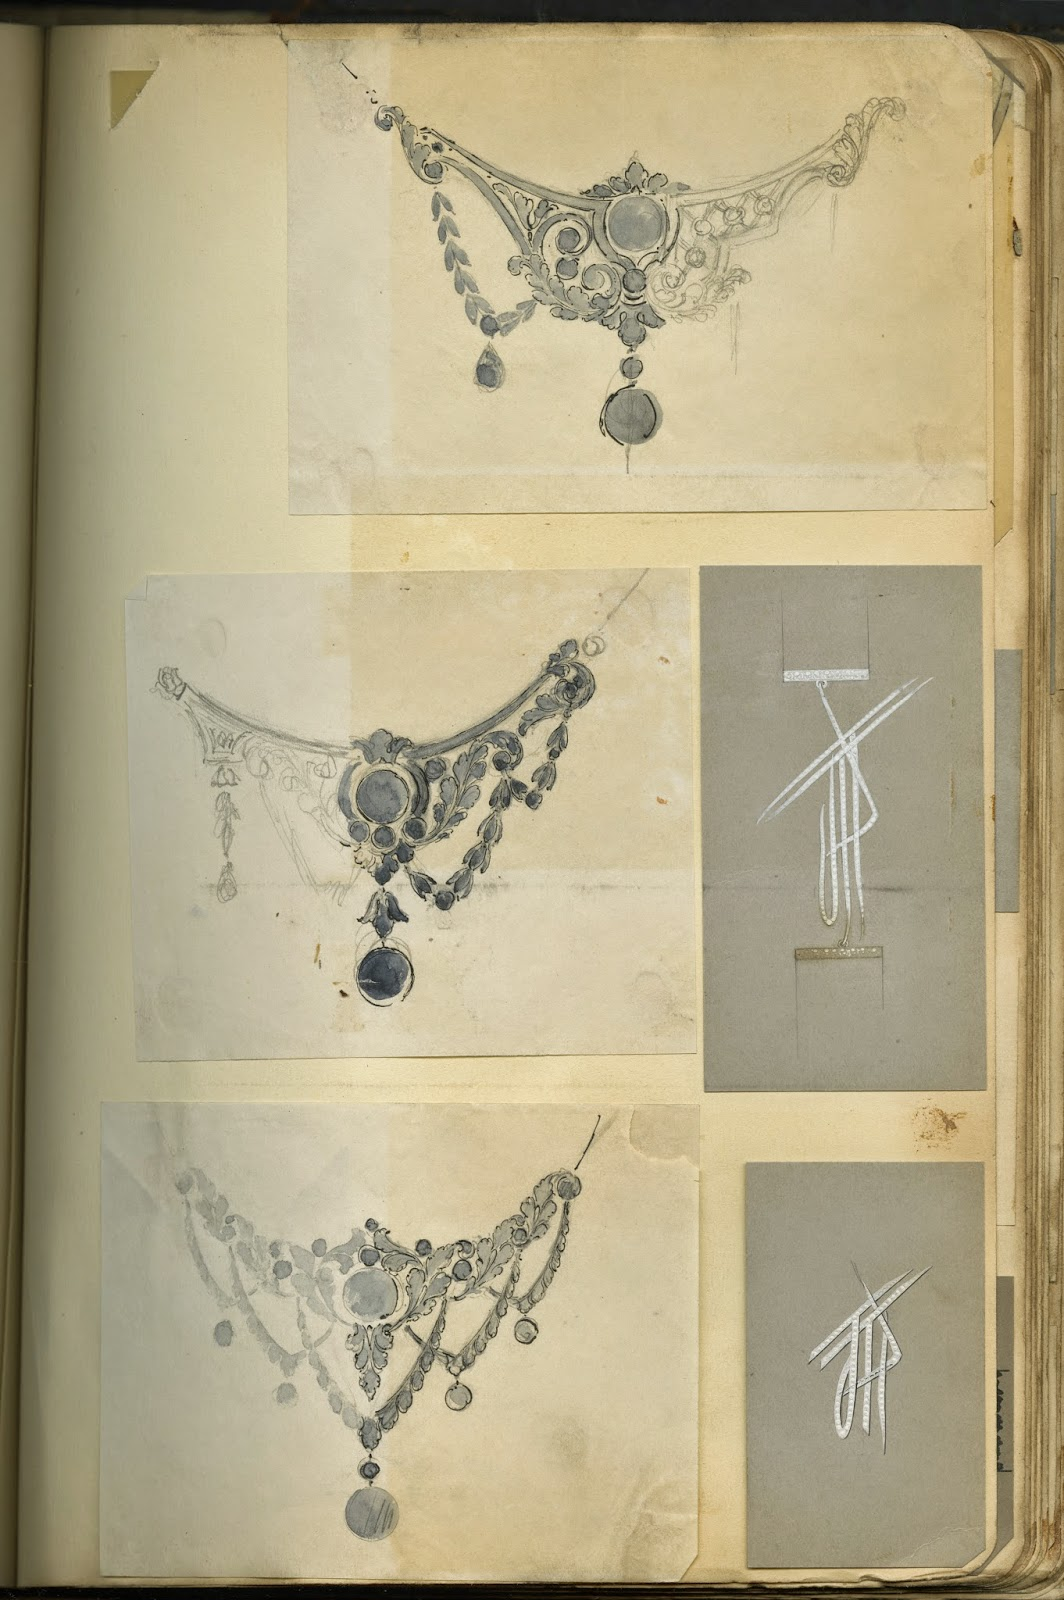 A page of three sketches for ornate necklaces.